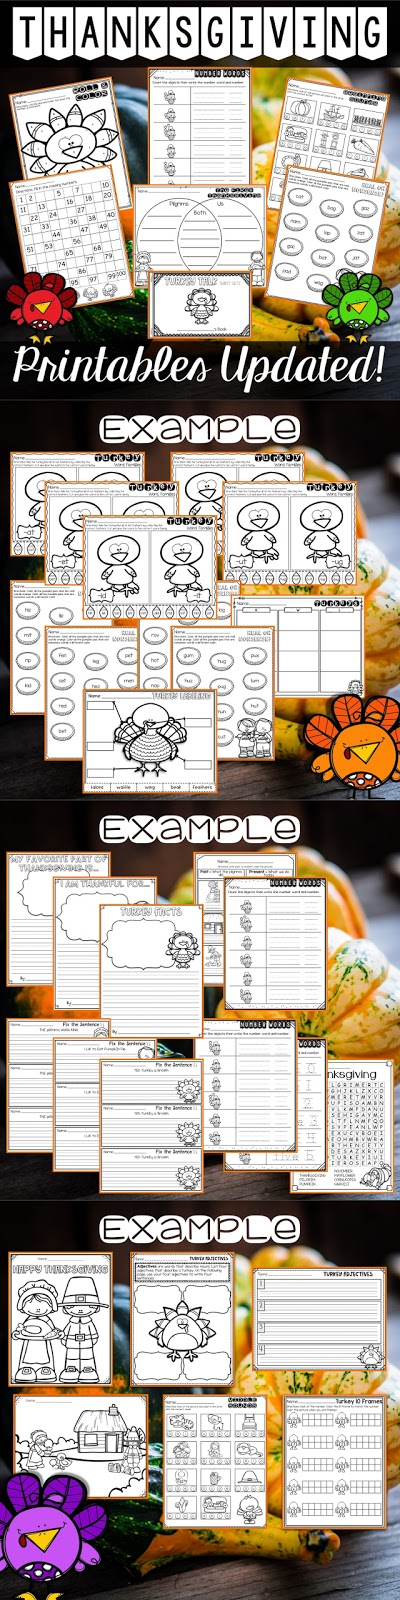 Thanksgiving Printables for Kindergarten and First Grade Teachers Pay Teachers